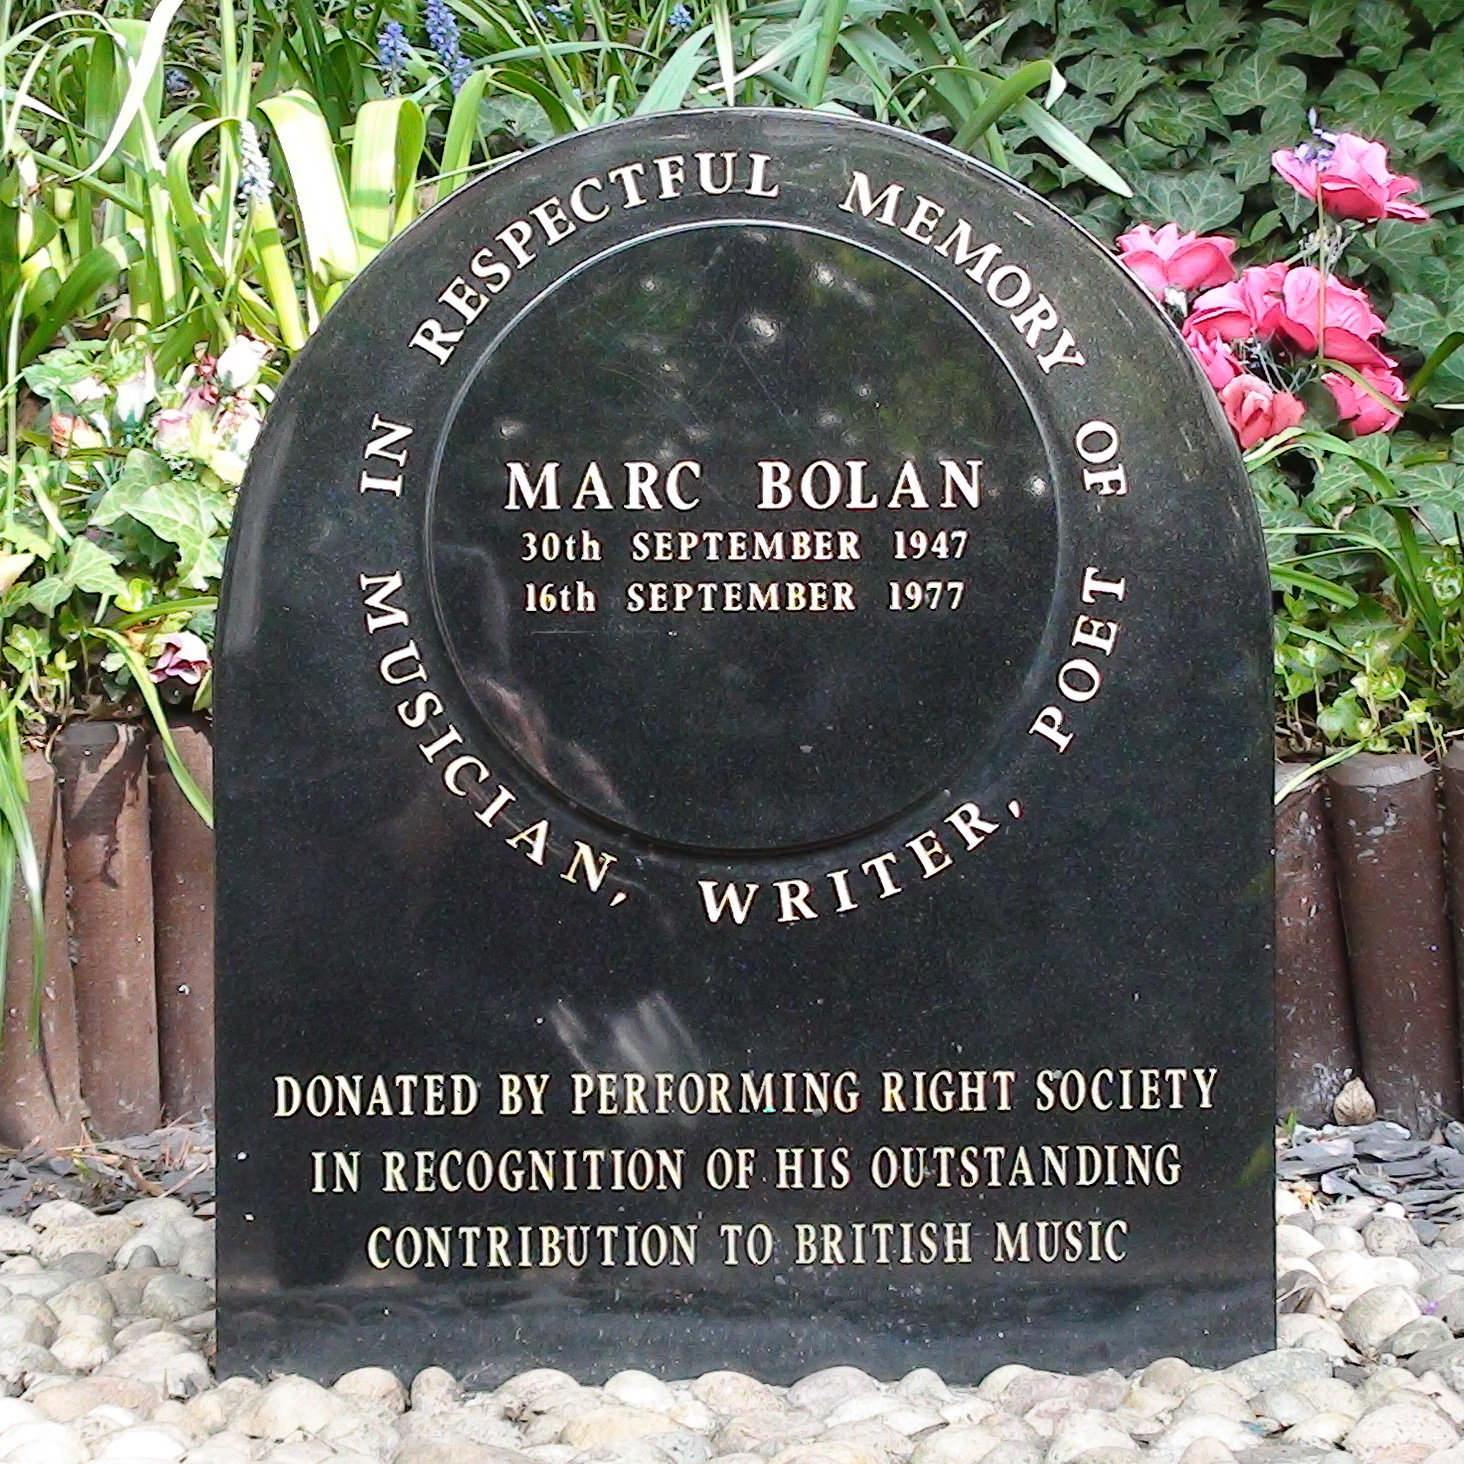 Marc Bolan Shrine Prs London Remembers Aiming To